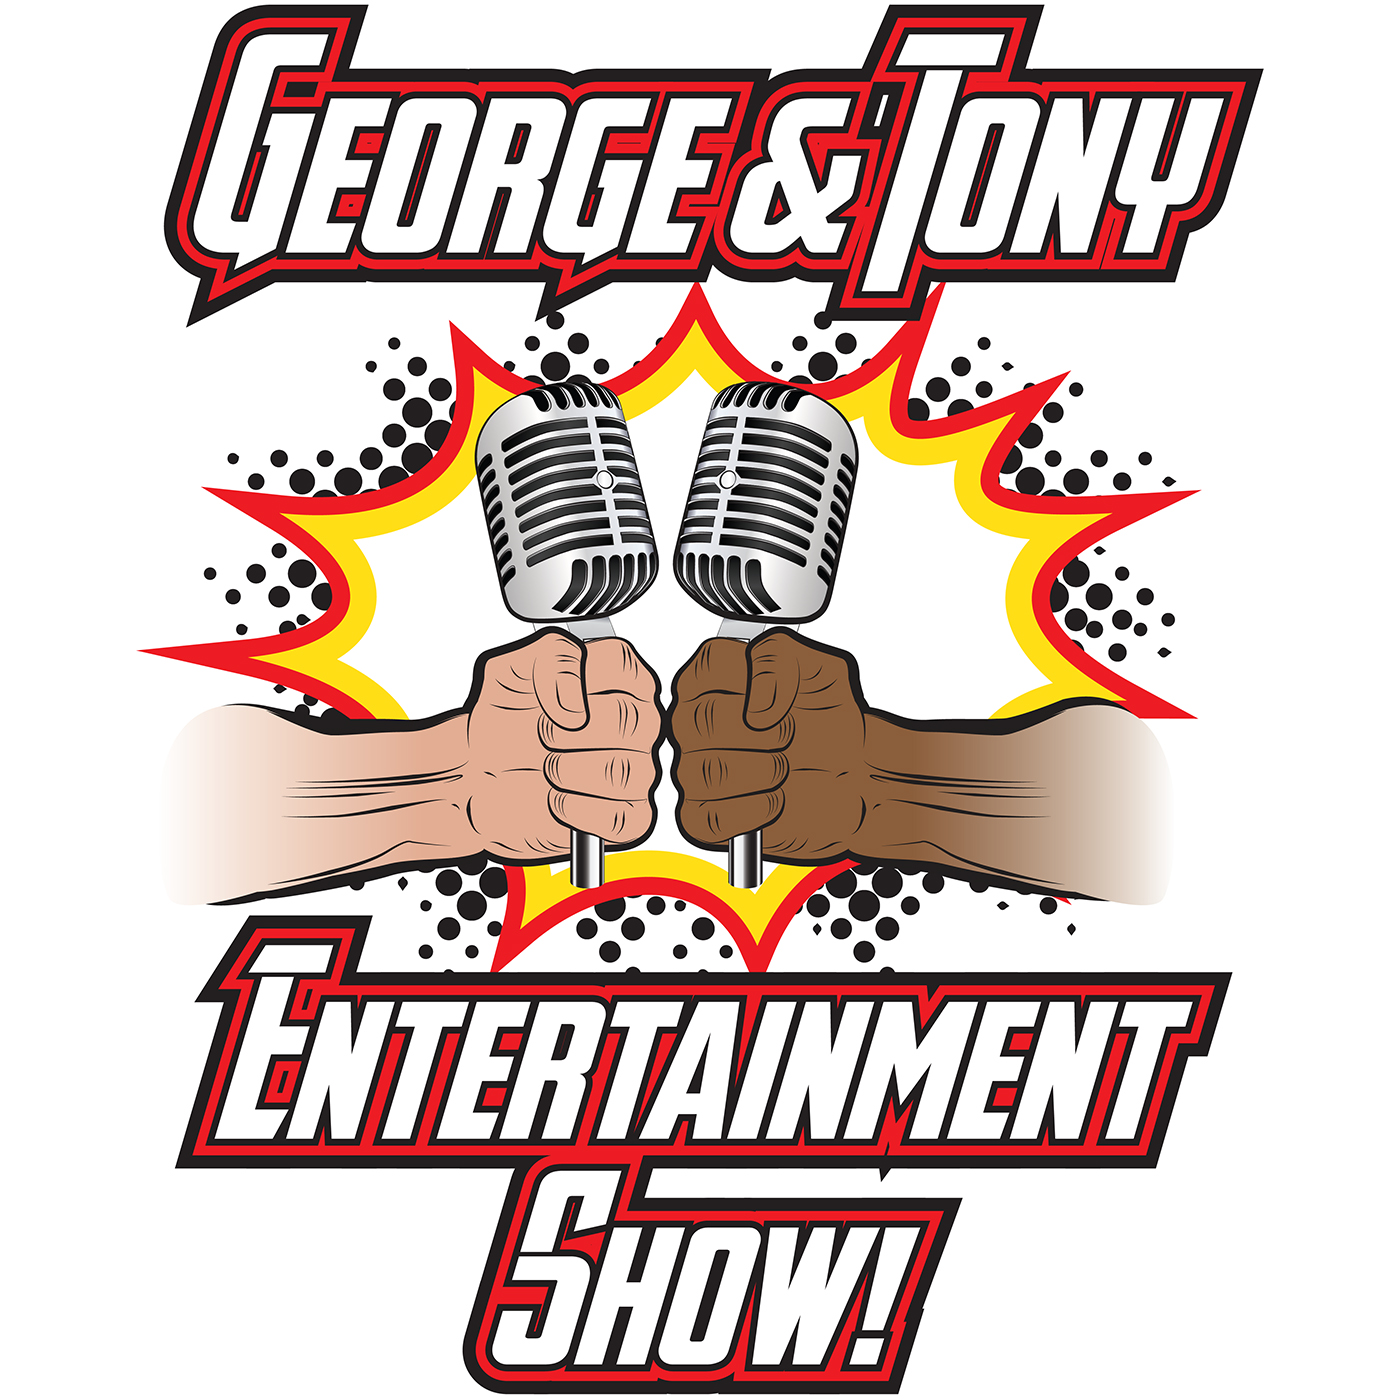 George and Tony Entertainment Show #144